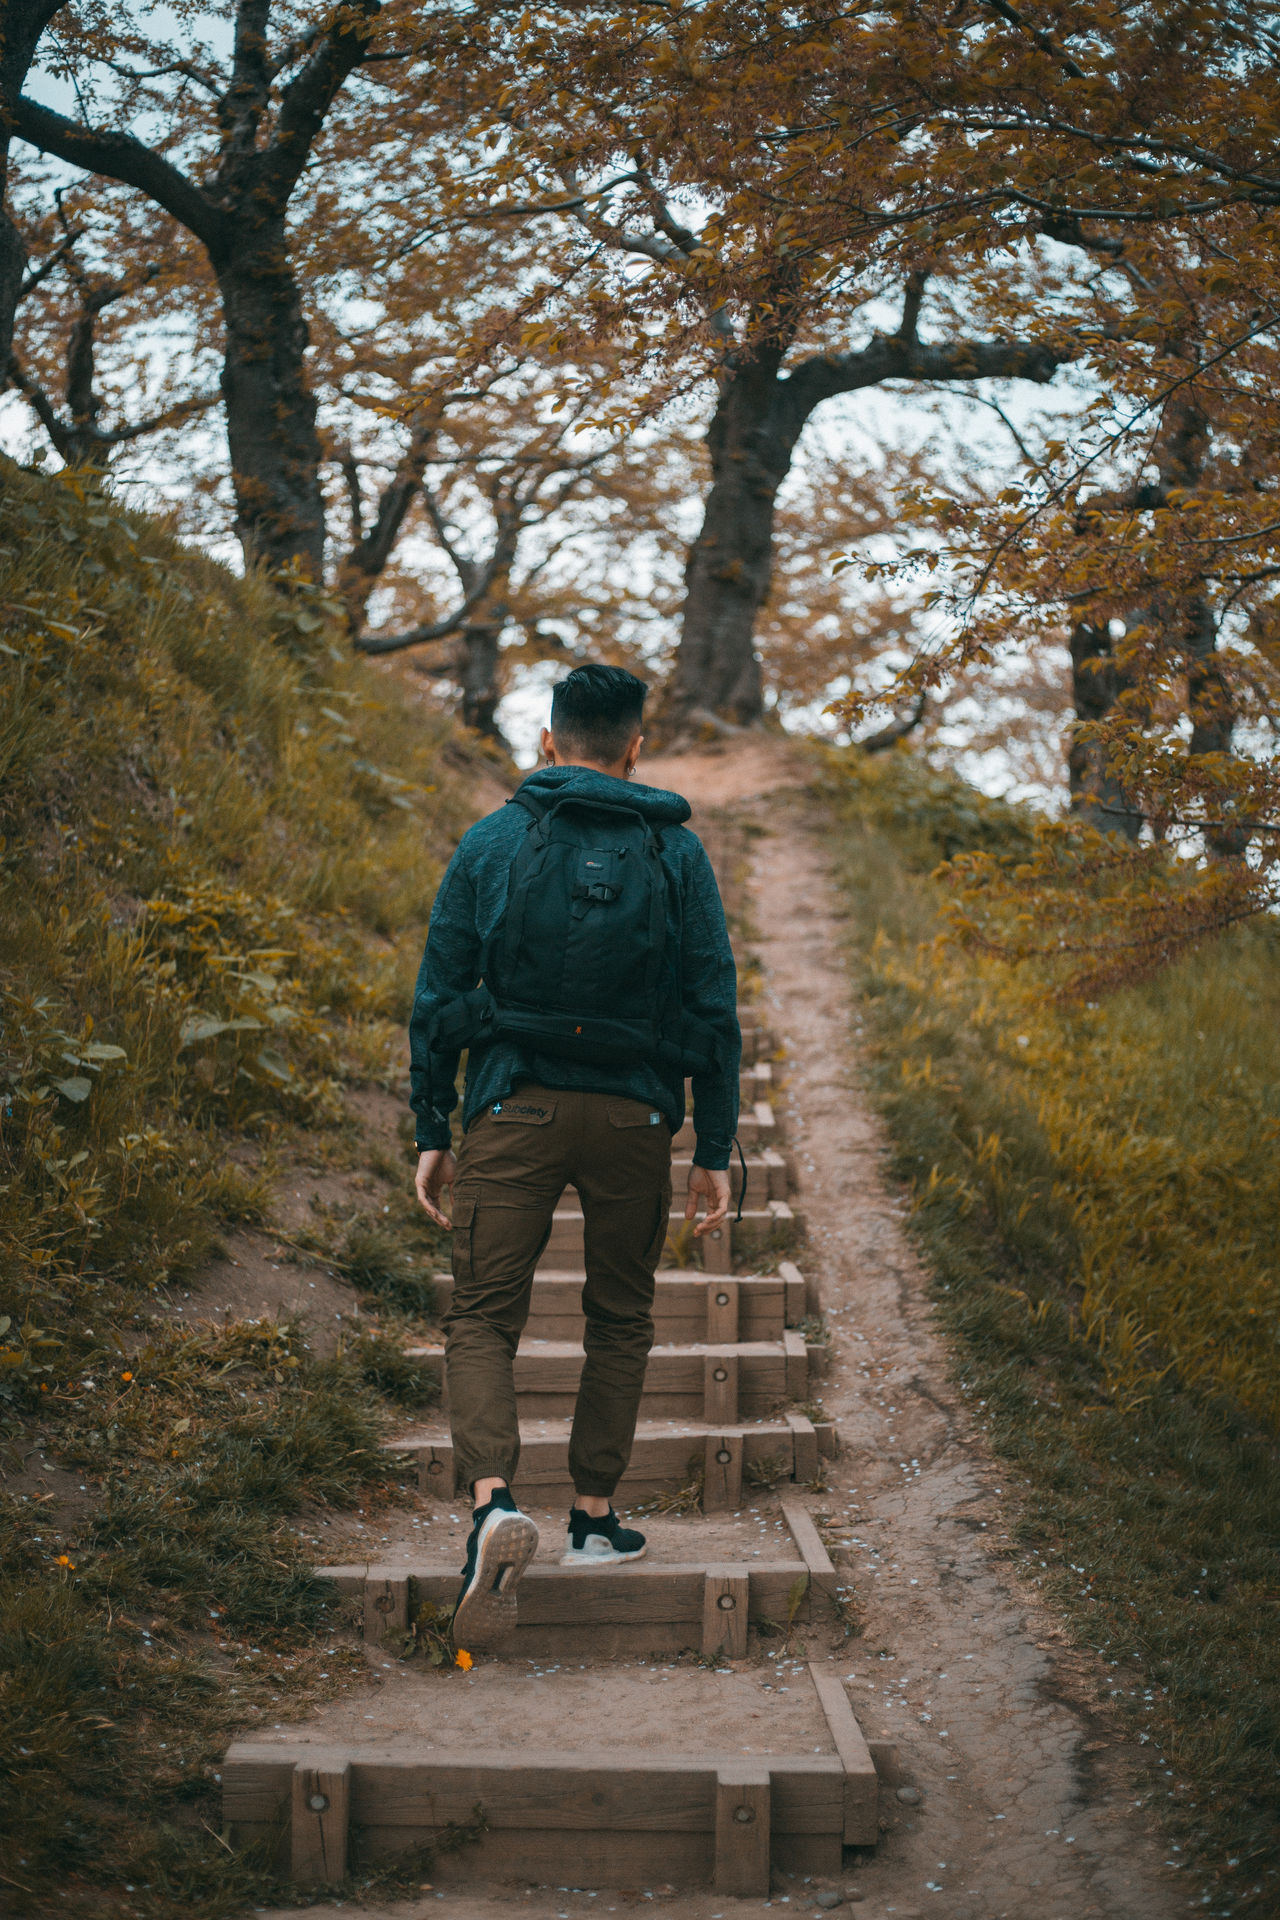 Autumn Backpack Camera Bag Casual Clothing Day Full Length Hiking Leisure Activity Lifestyles Nature One Person Outdoors People Real People Rear View Sky Sneakers Travel Tree Trekking Walking Wanderlust